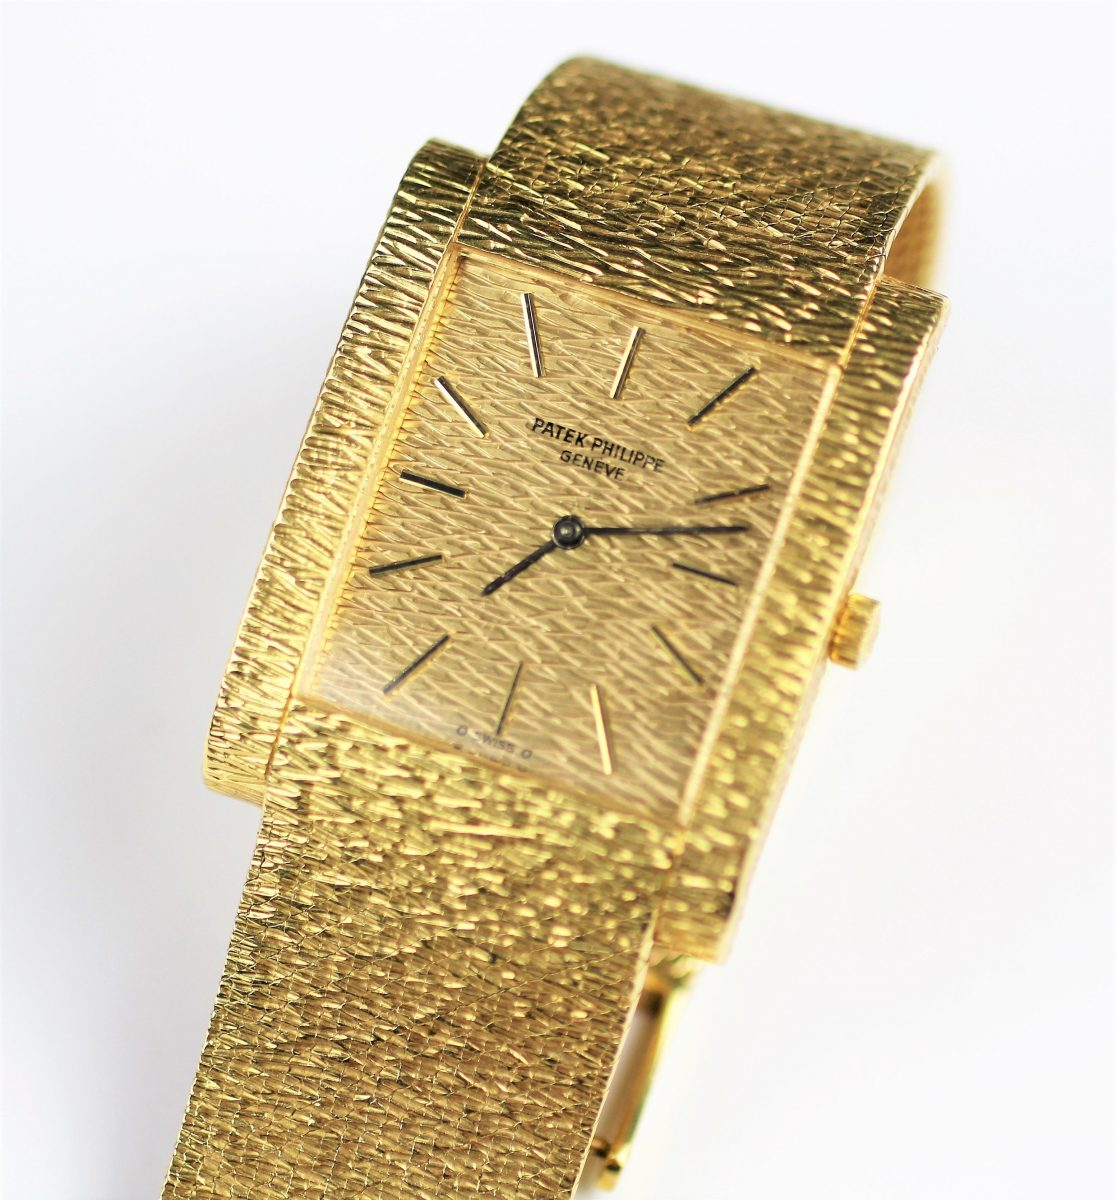 25. An 18ct gold Patek Philippe wristwatch circa 1970 SOLD for £3,100